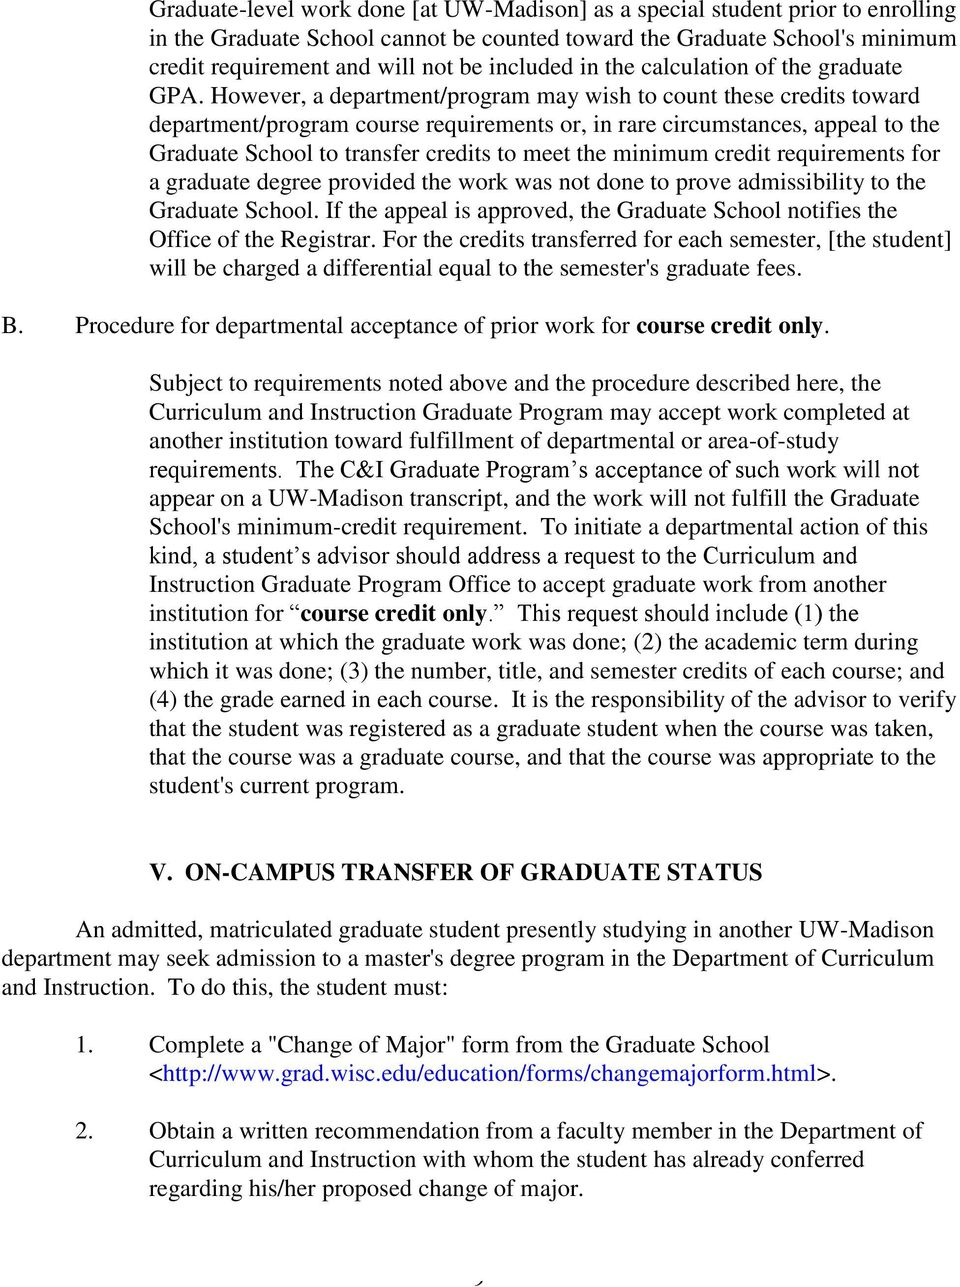 However, a department/program may wish to count these credits toward department/program course requirements or, in rare circumstances, appeal to the Graduate School to transfer credits to meet the